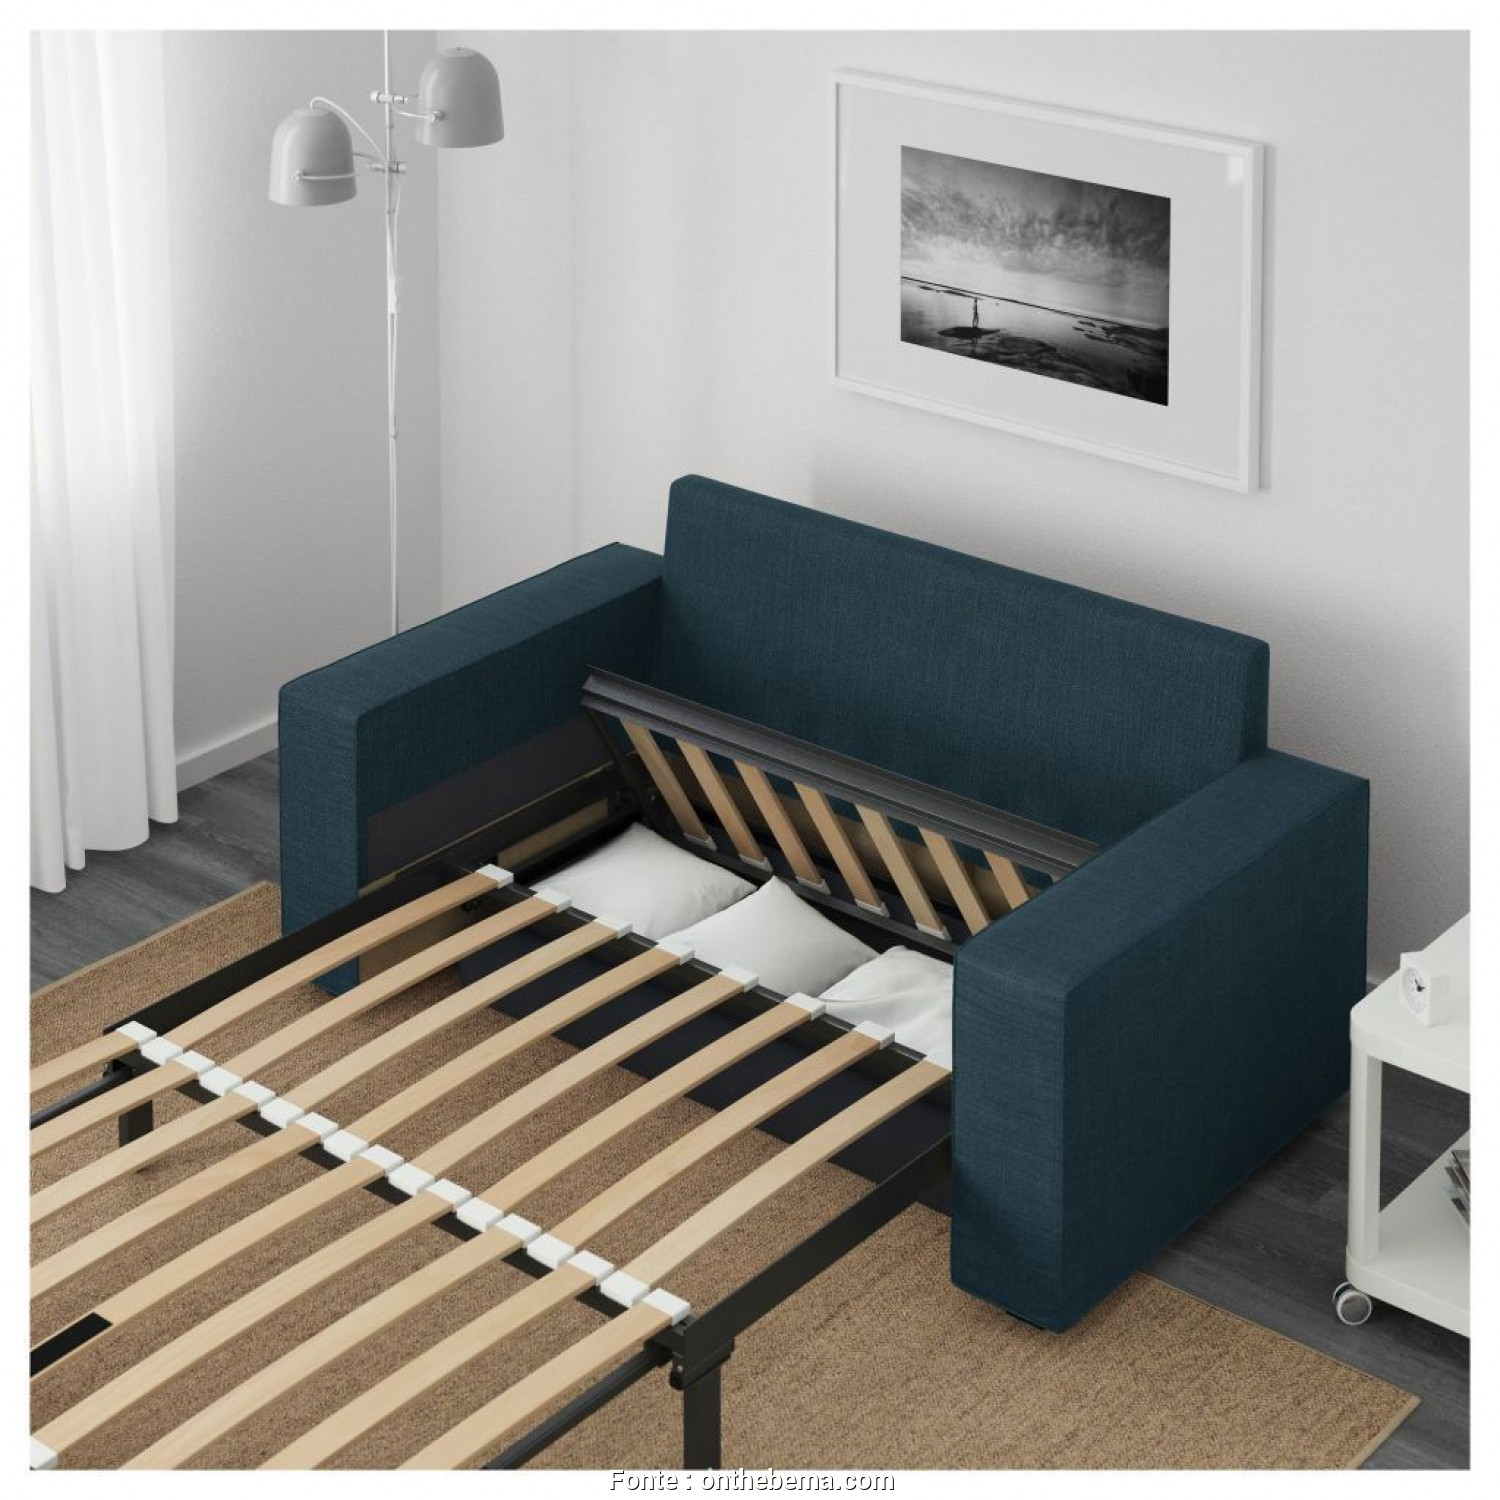 Bellissima 5 Asarum Ikea Sofa Bed Keever For Congress